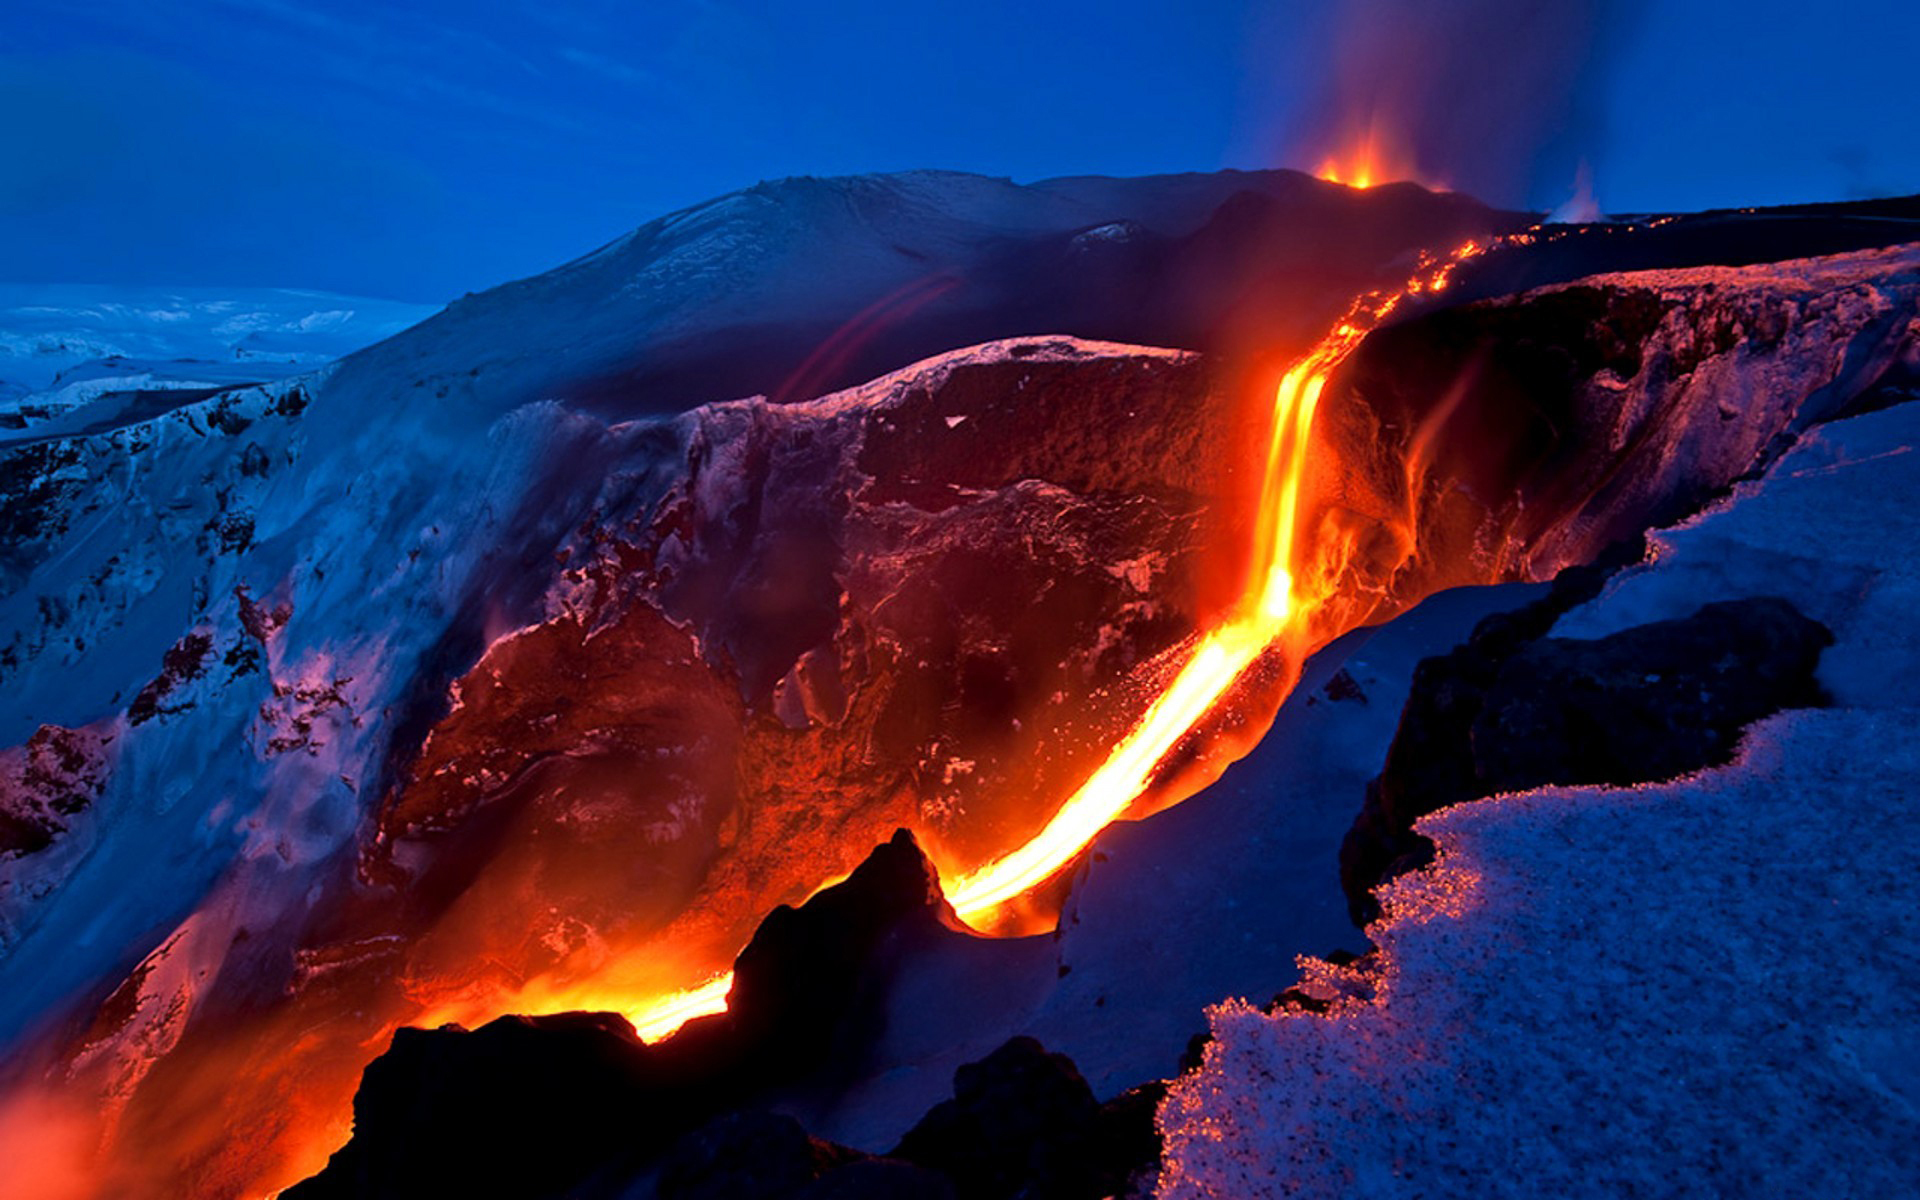 Awesome Hd Volcano Wallpaper  te Volcano Computer Wallpapers, Desktop Backgrounds  ID 1920x1200